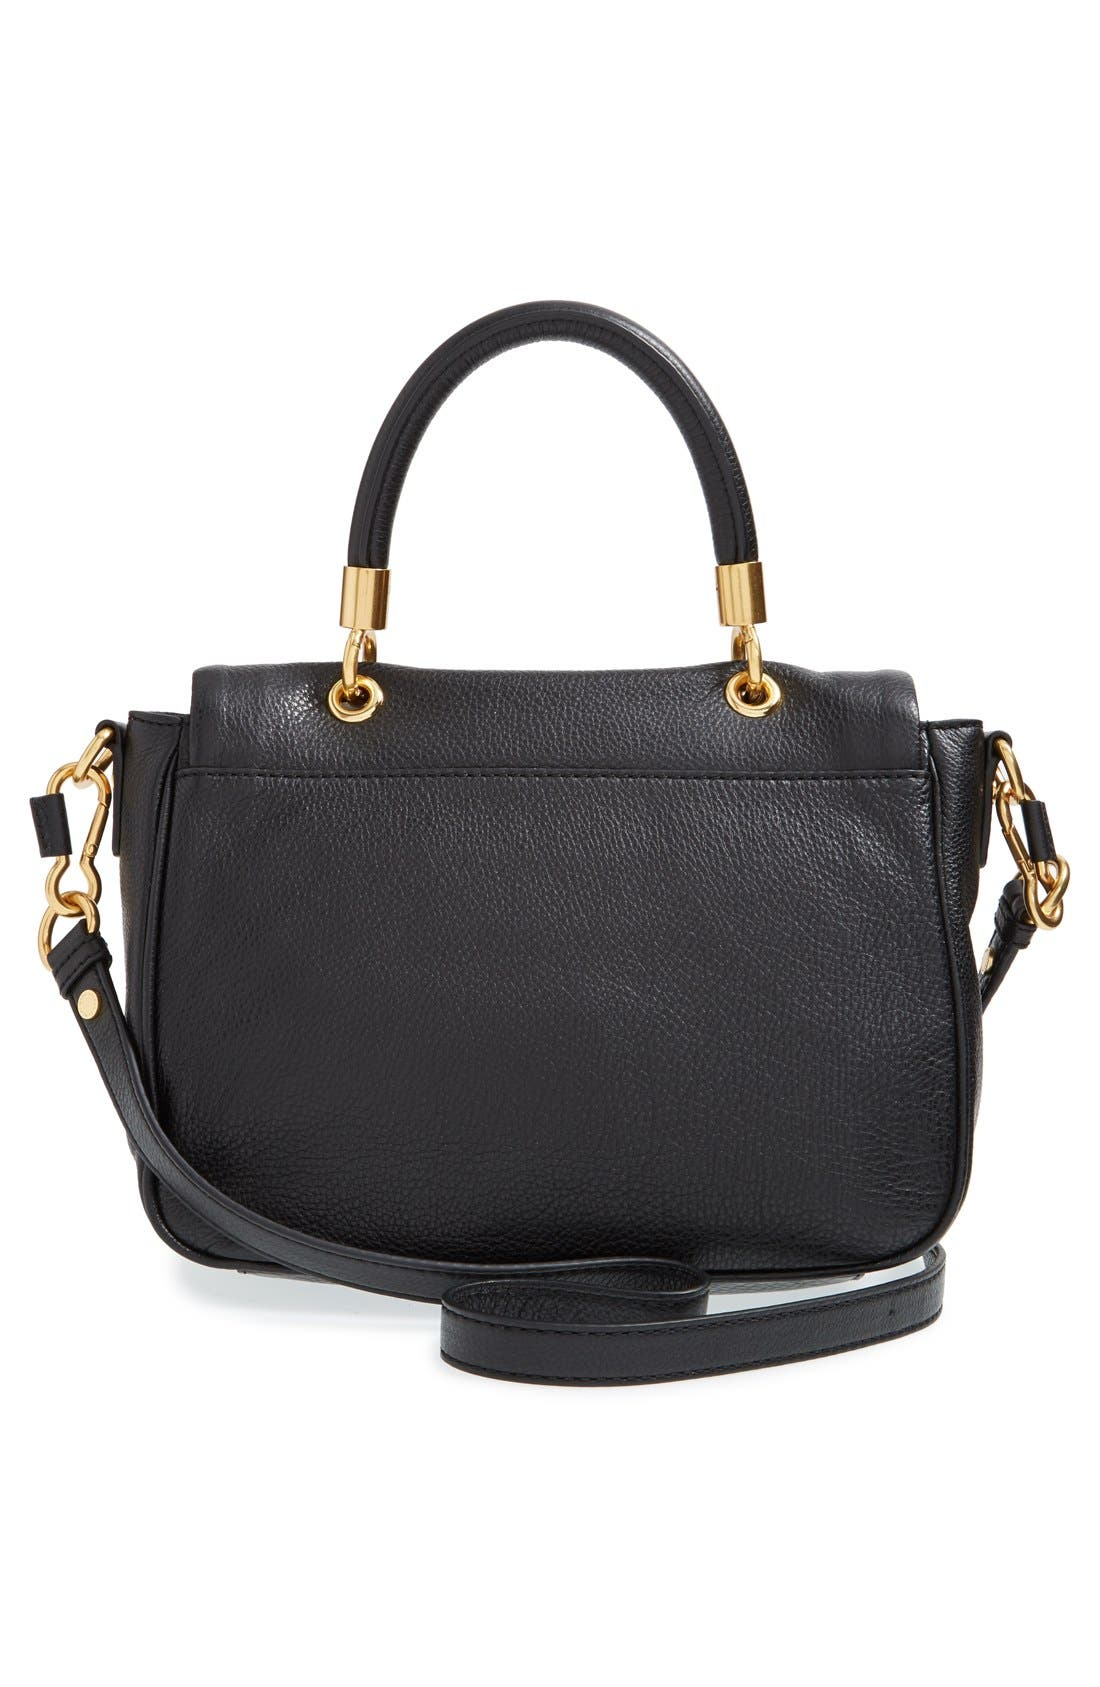 MARC JACOBS,                             MARC BY MARC JACOBS 'Small Too Hot To Handle' Leather Tote,                             Alternate thumbnail 4, color,                             001